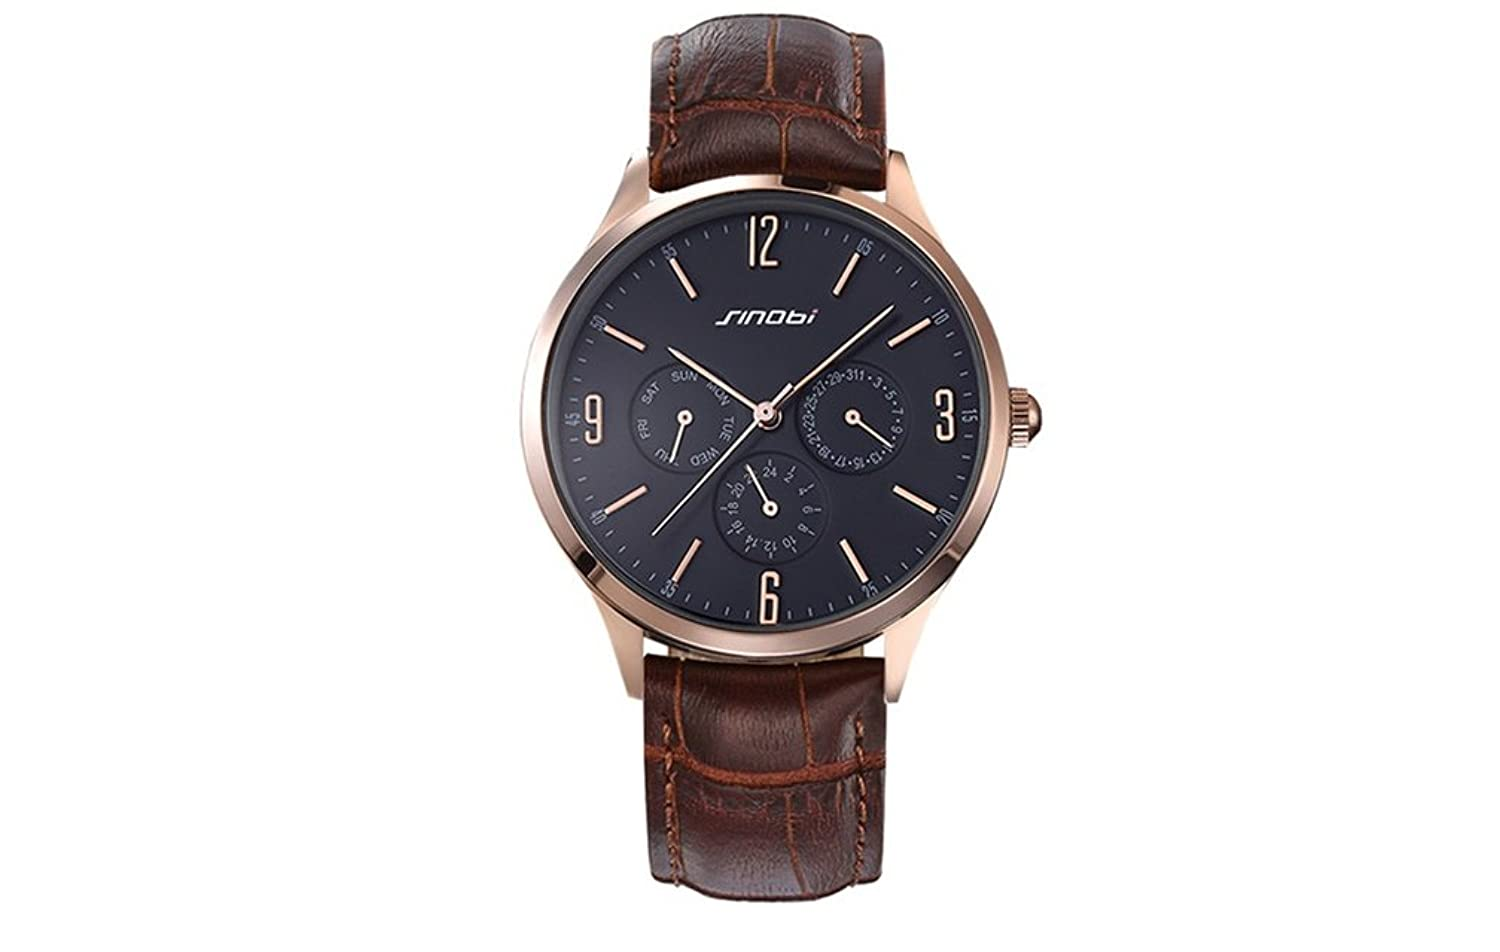 Amazon.com: Relojes de Hombre Moda 2018 Men Watches Fashion Casual Quartz Brown Leather RE0087: Watches